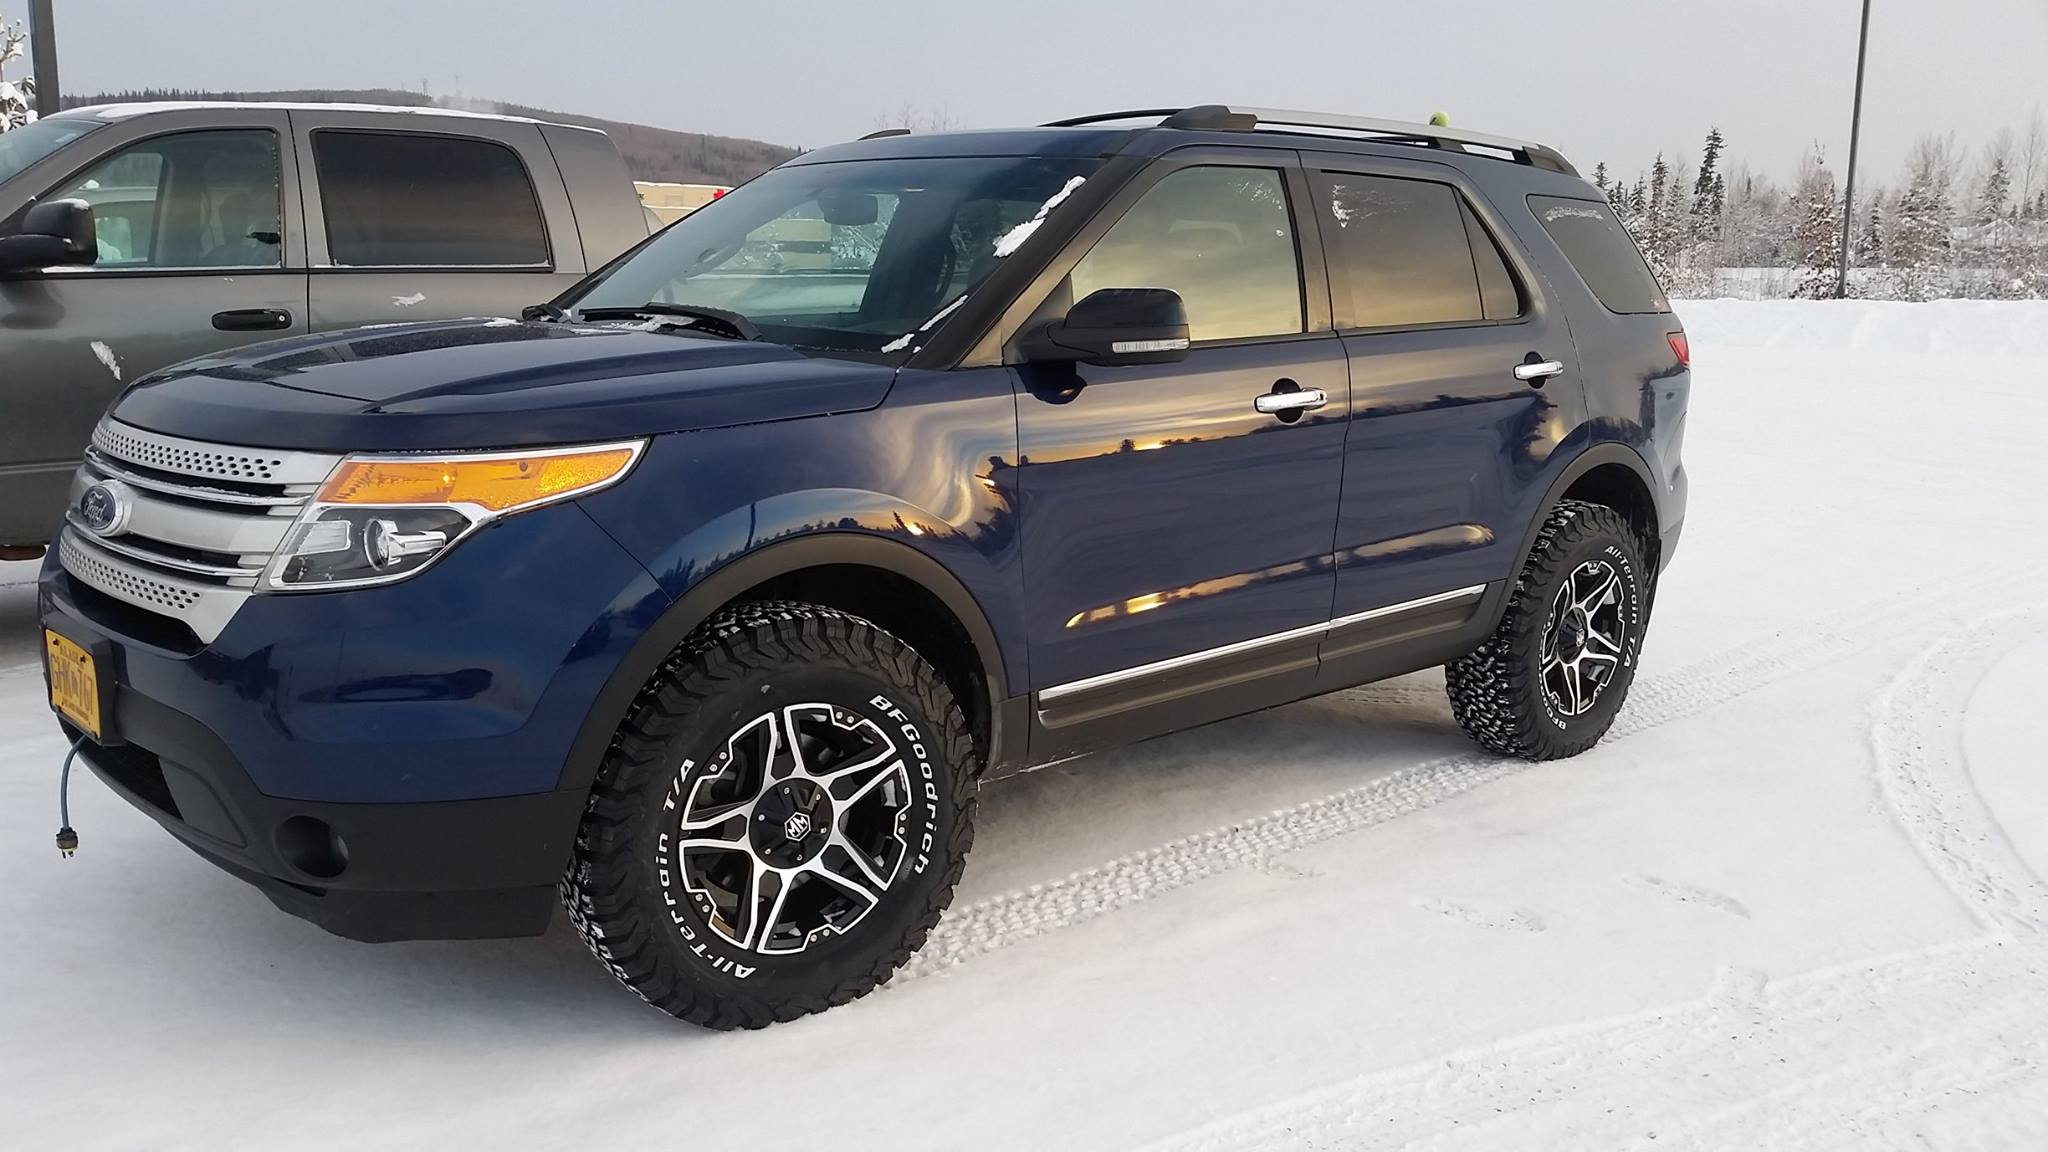 lift kits for 5th gen explorer page 13 ford explorer. Black Bedroom Furniture Sets. Home Design Ideas